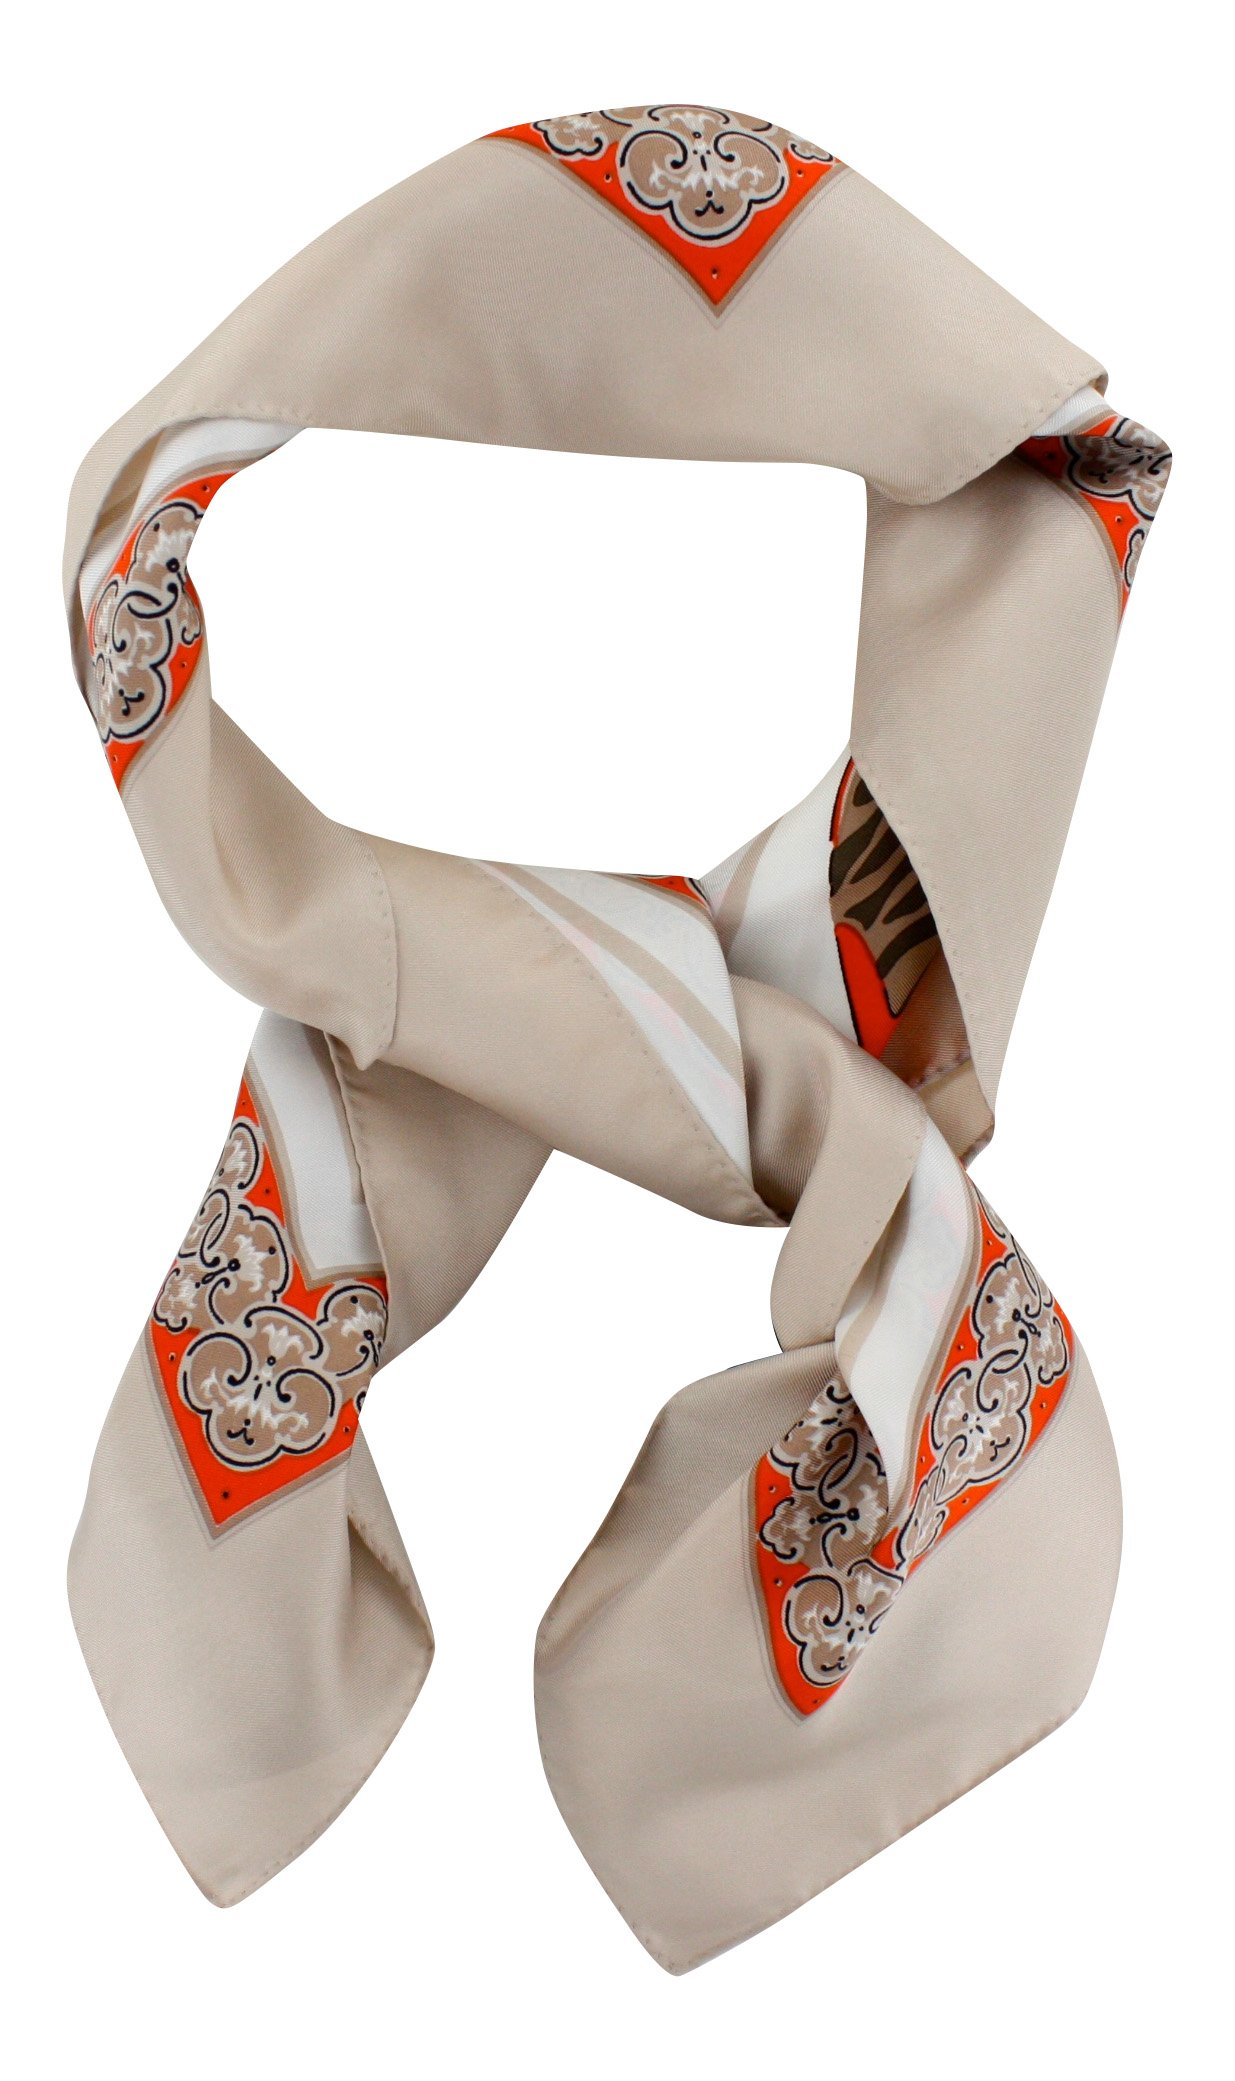 Silk Scarf ''La Parisienne'', Square 35''x35'', Made in France, 100% Silk Twill, beige by My French Neighbor